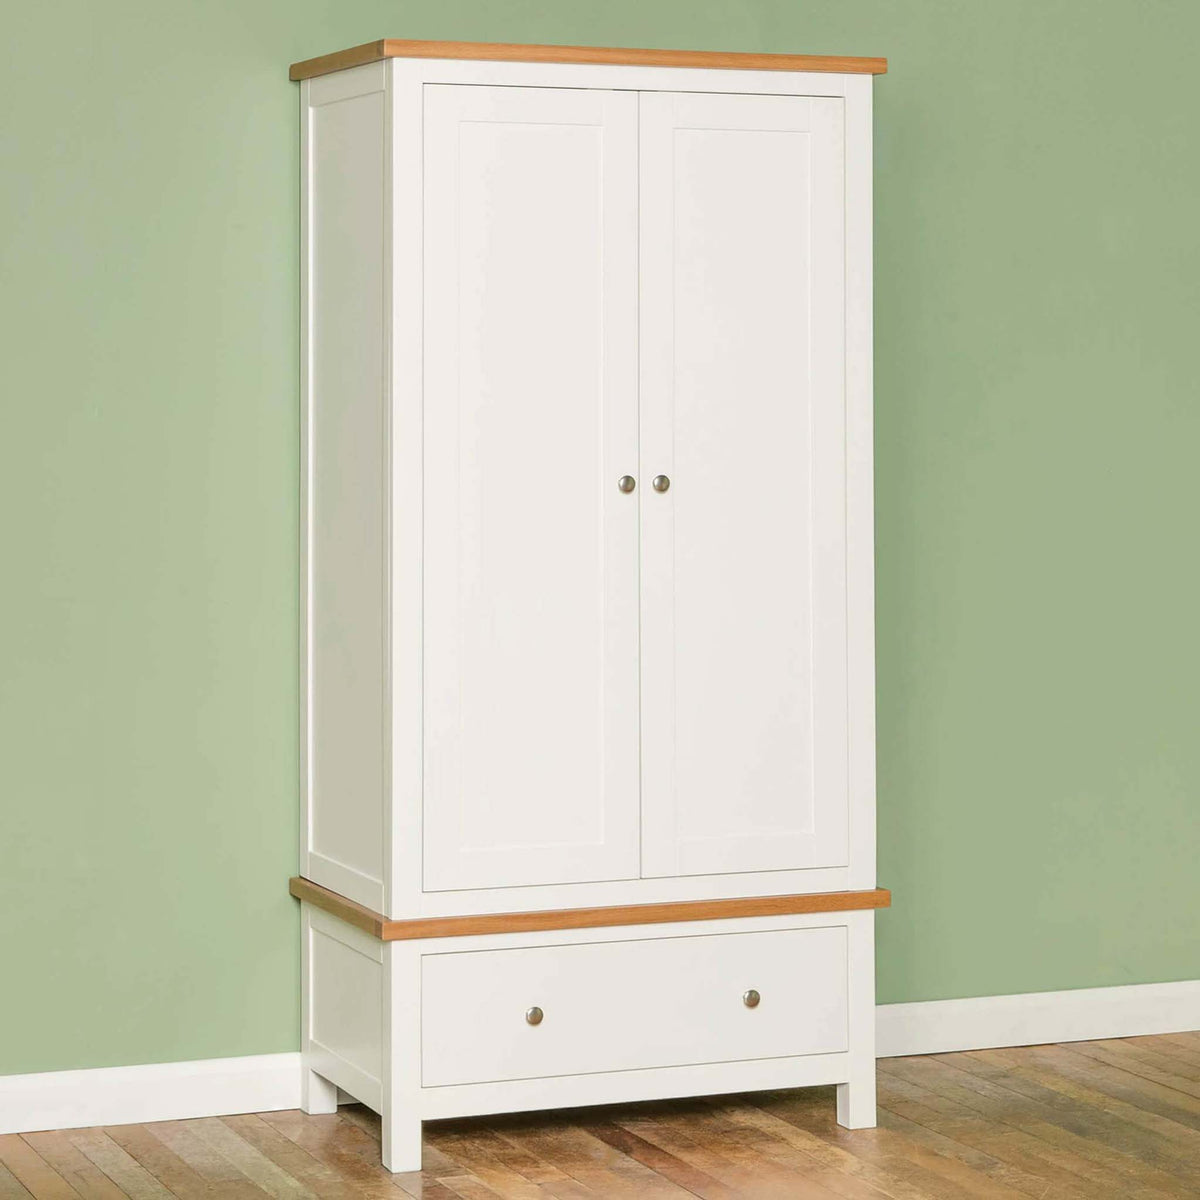 Farrow White Double Wardrobe - Lifestyle side view